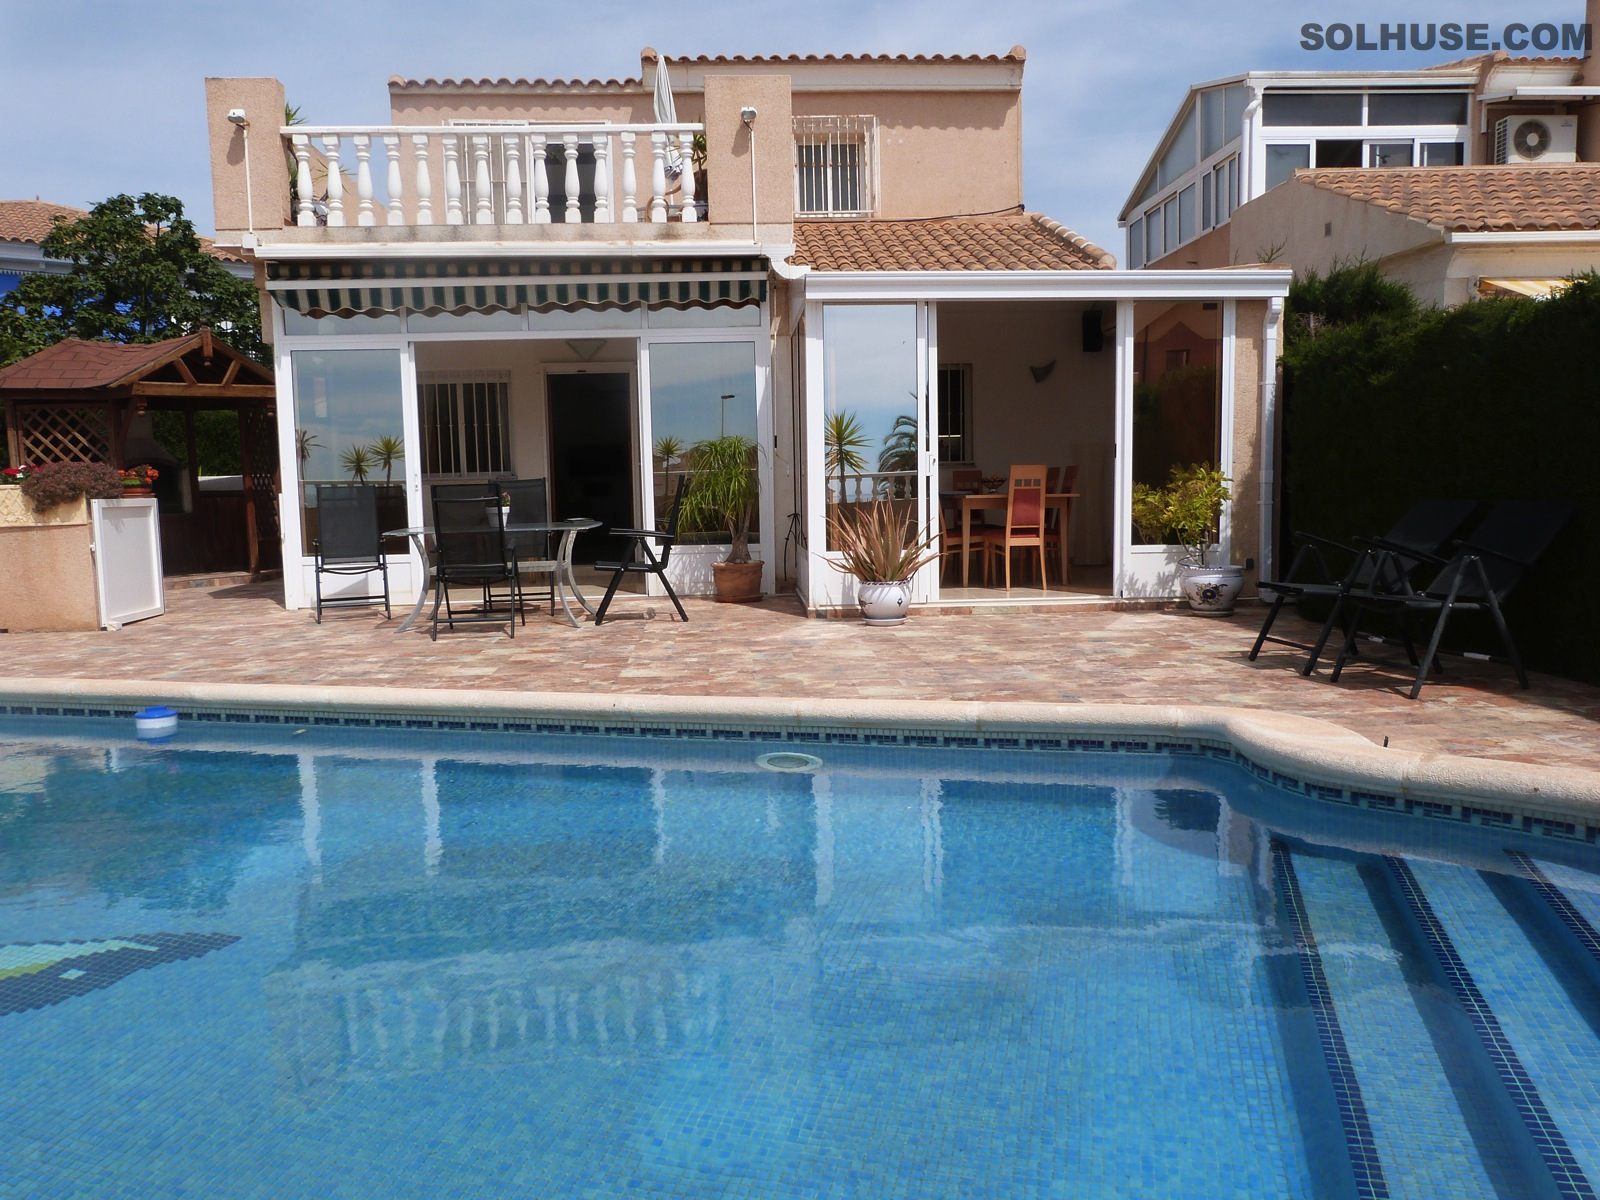 WONDERFUL DETACHED 3 BED VILLA, POOL & STUNNING SEAVIEWS